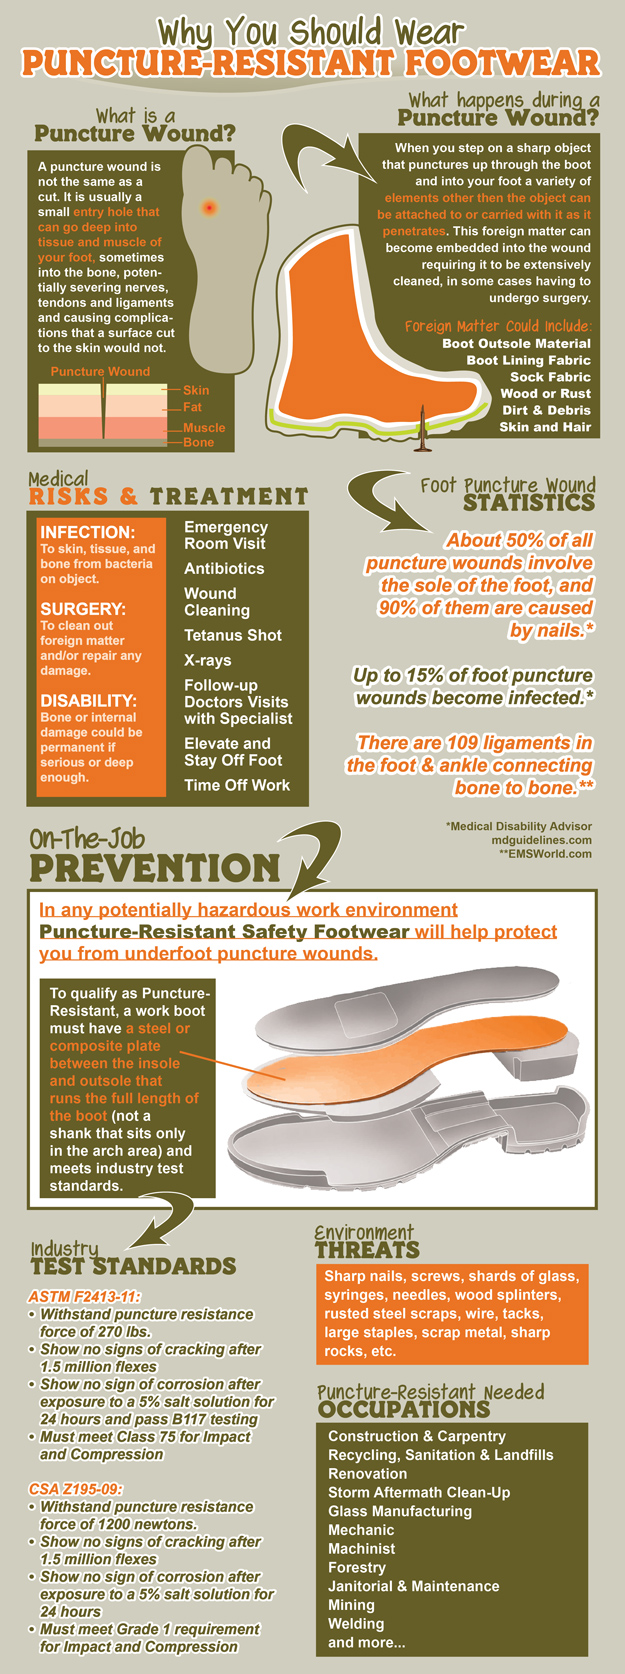 Puncture Resistant Footwear Infographic